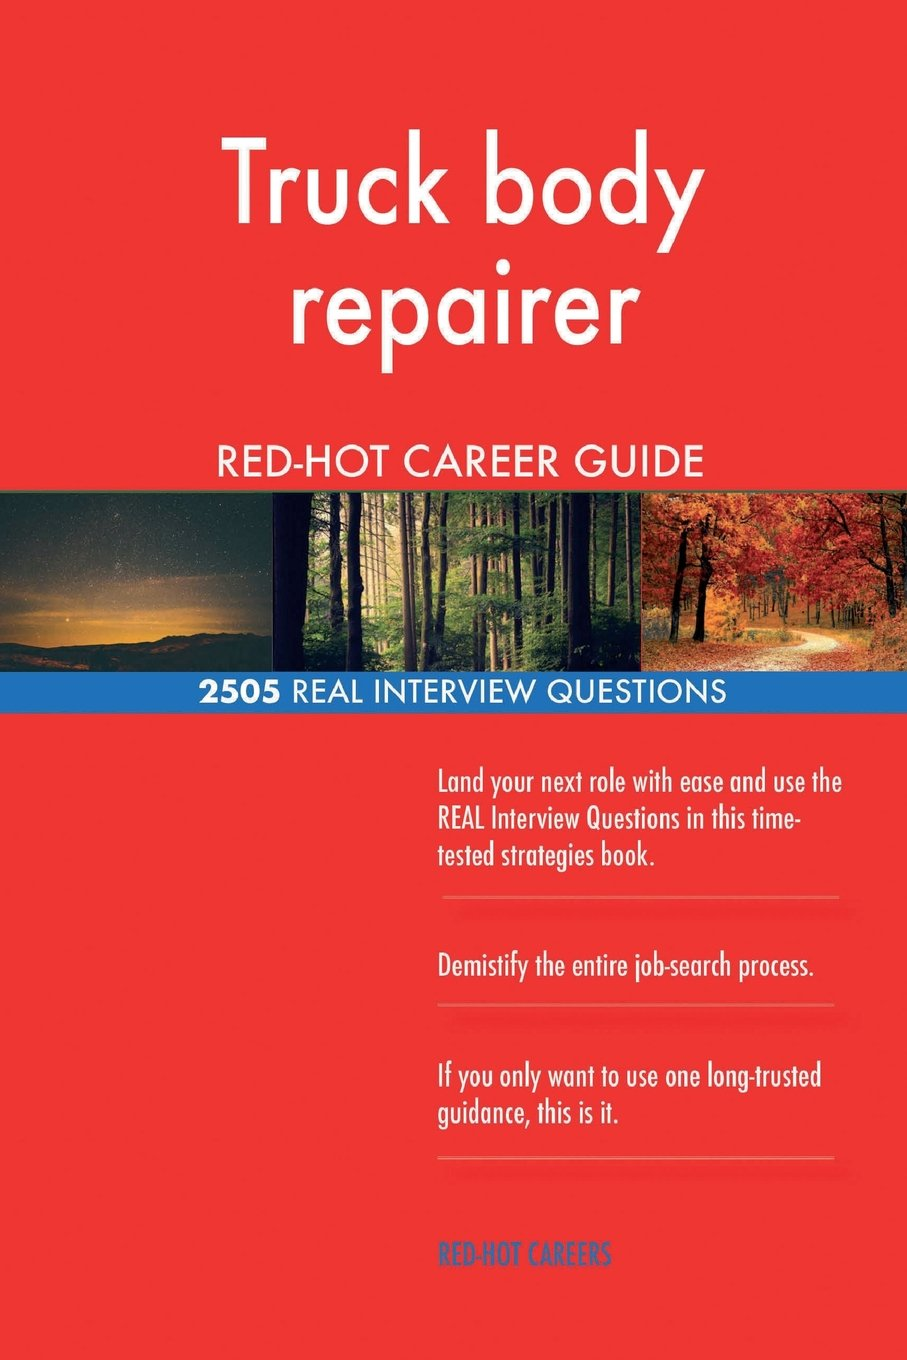 Truck body repairer RED-HOT Career Guide; 2505 REAL Interview Questions pdf